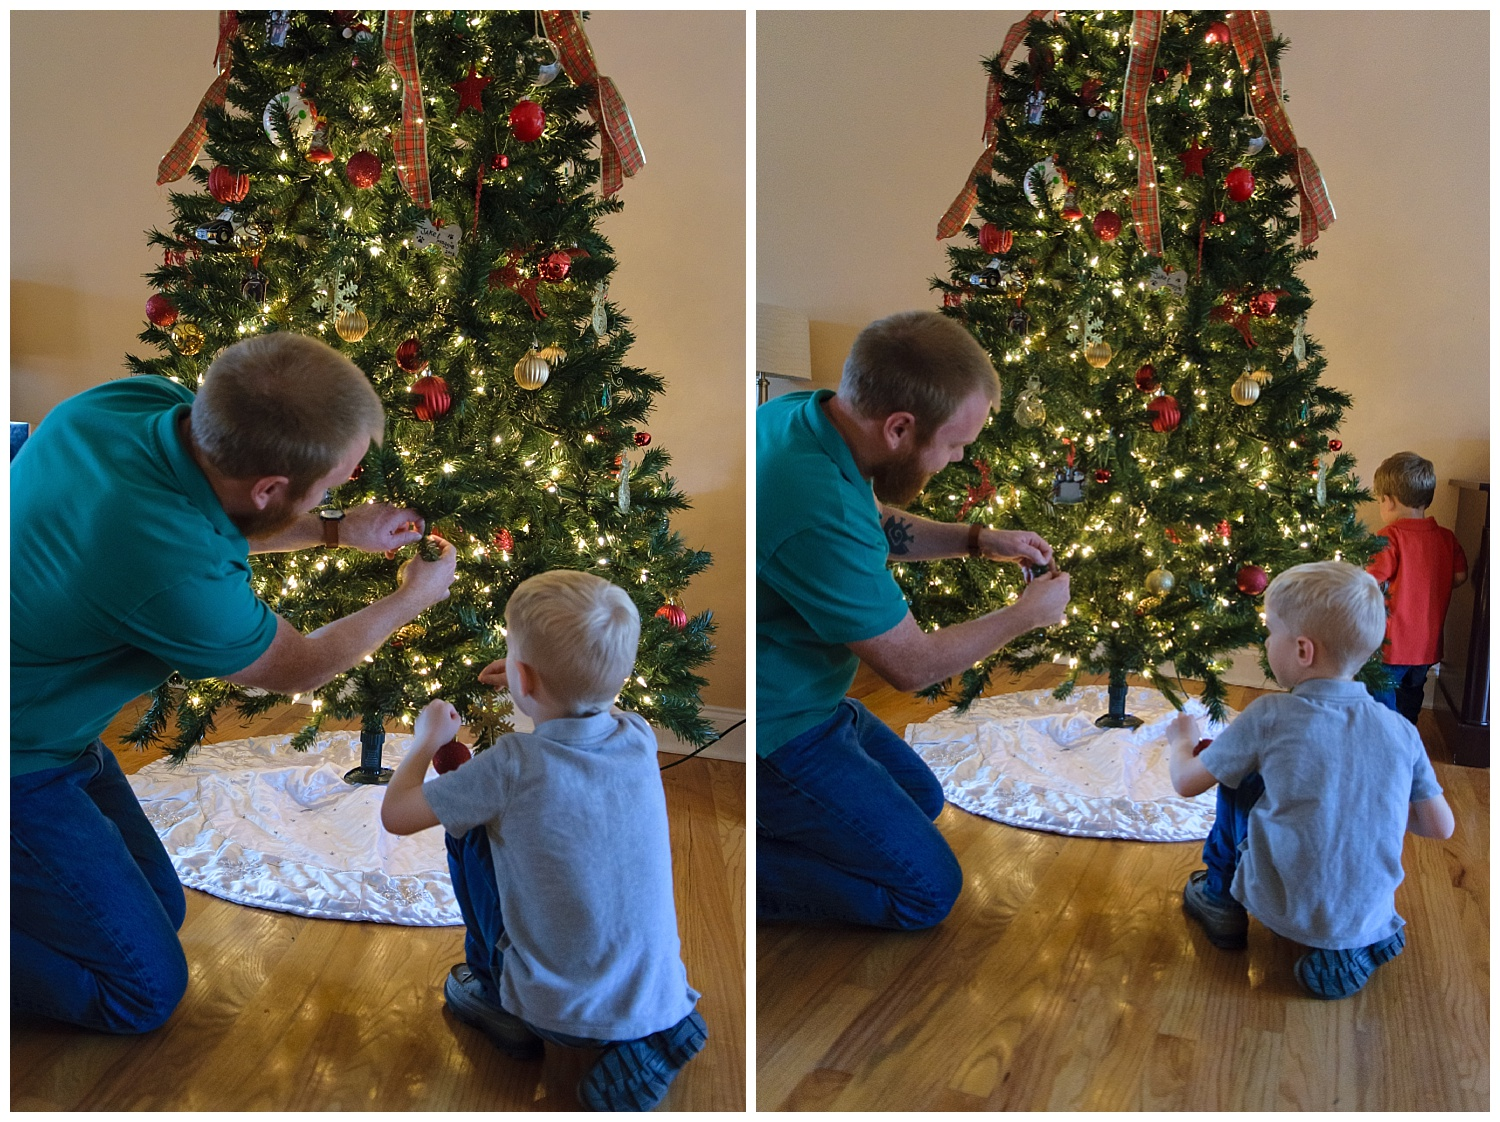 these are images of a dad showing his son ornaments on the family's christmas tree. the images were taken indoors during a lifestyle family session.